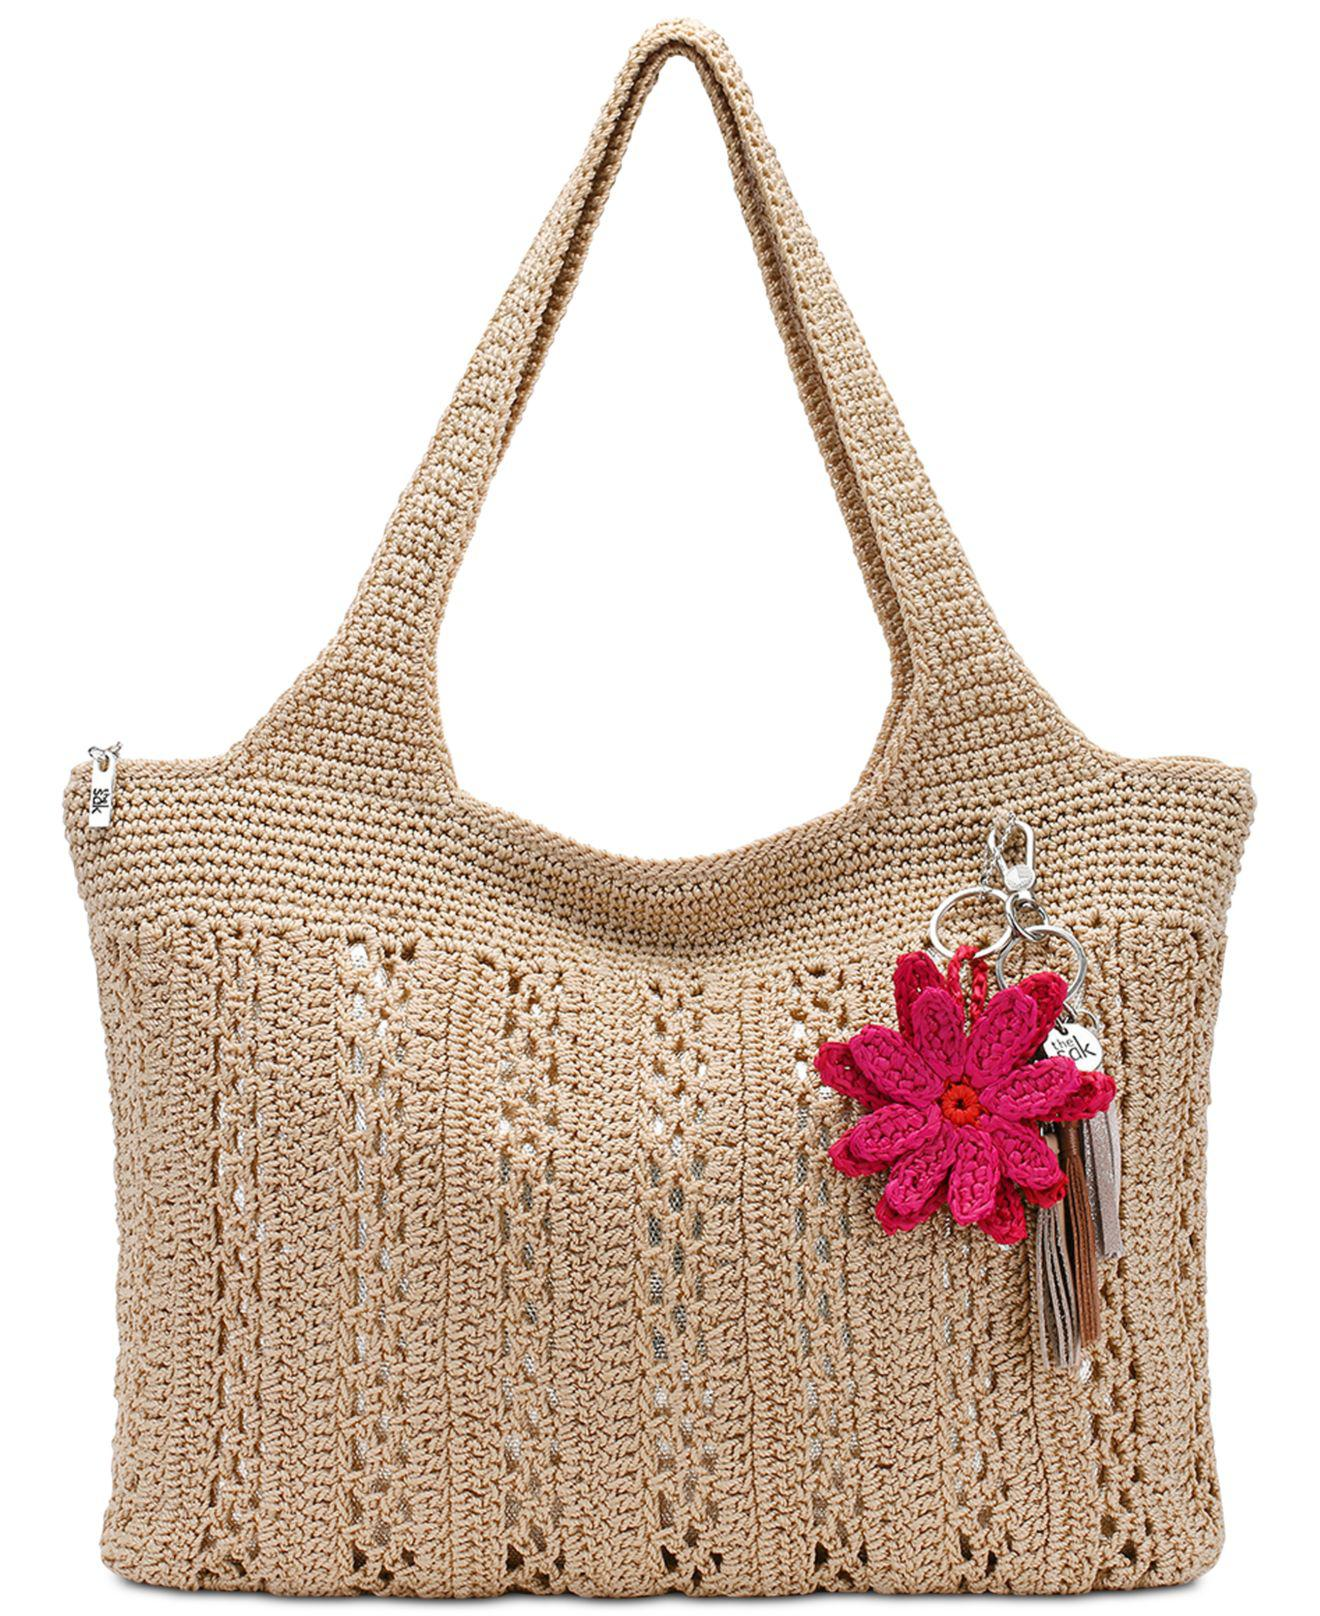 aa5689ba46 Lyst - The Sak Casual Classic Crochet Tote - Save 33%